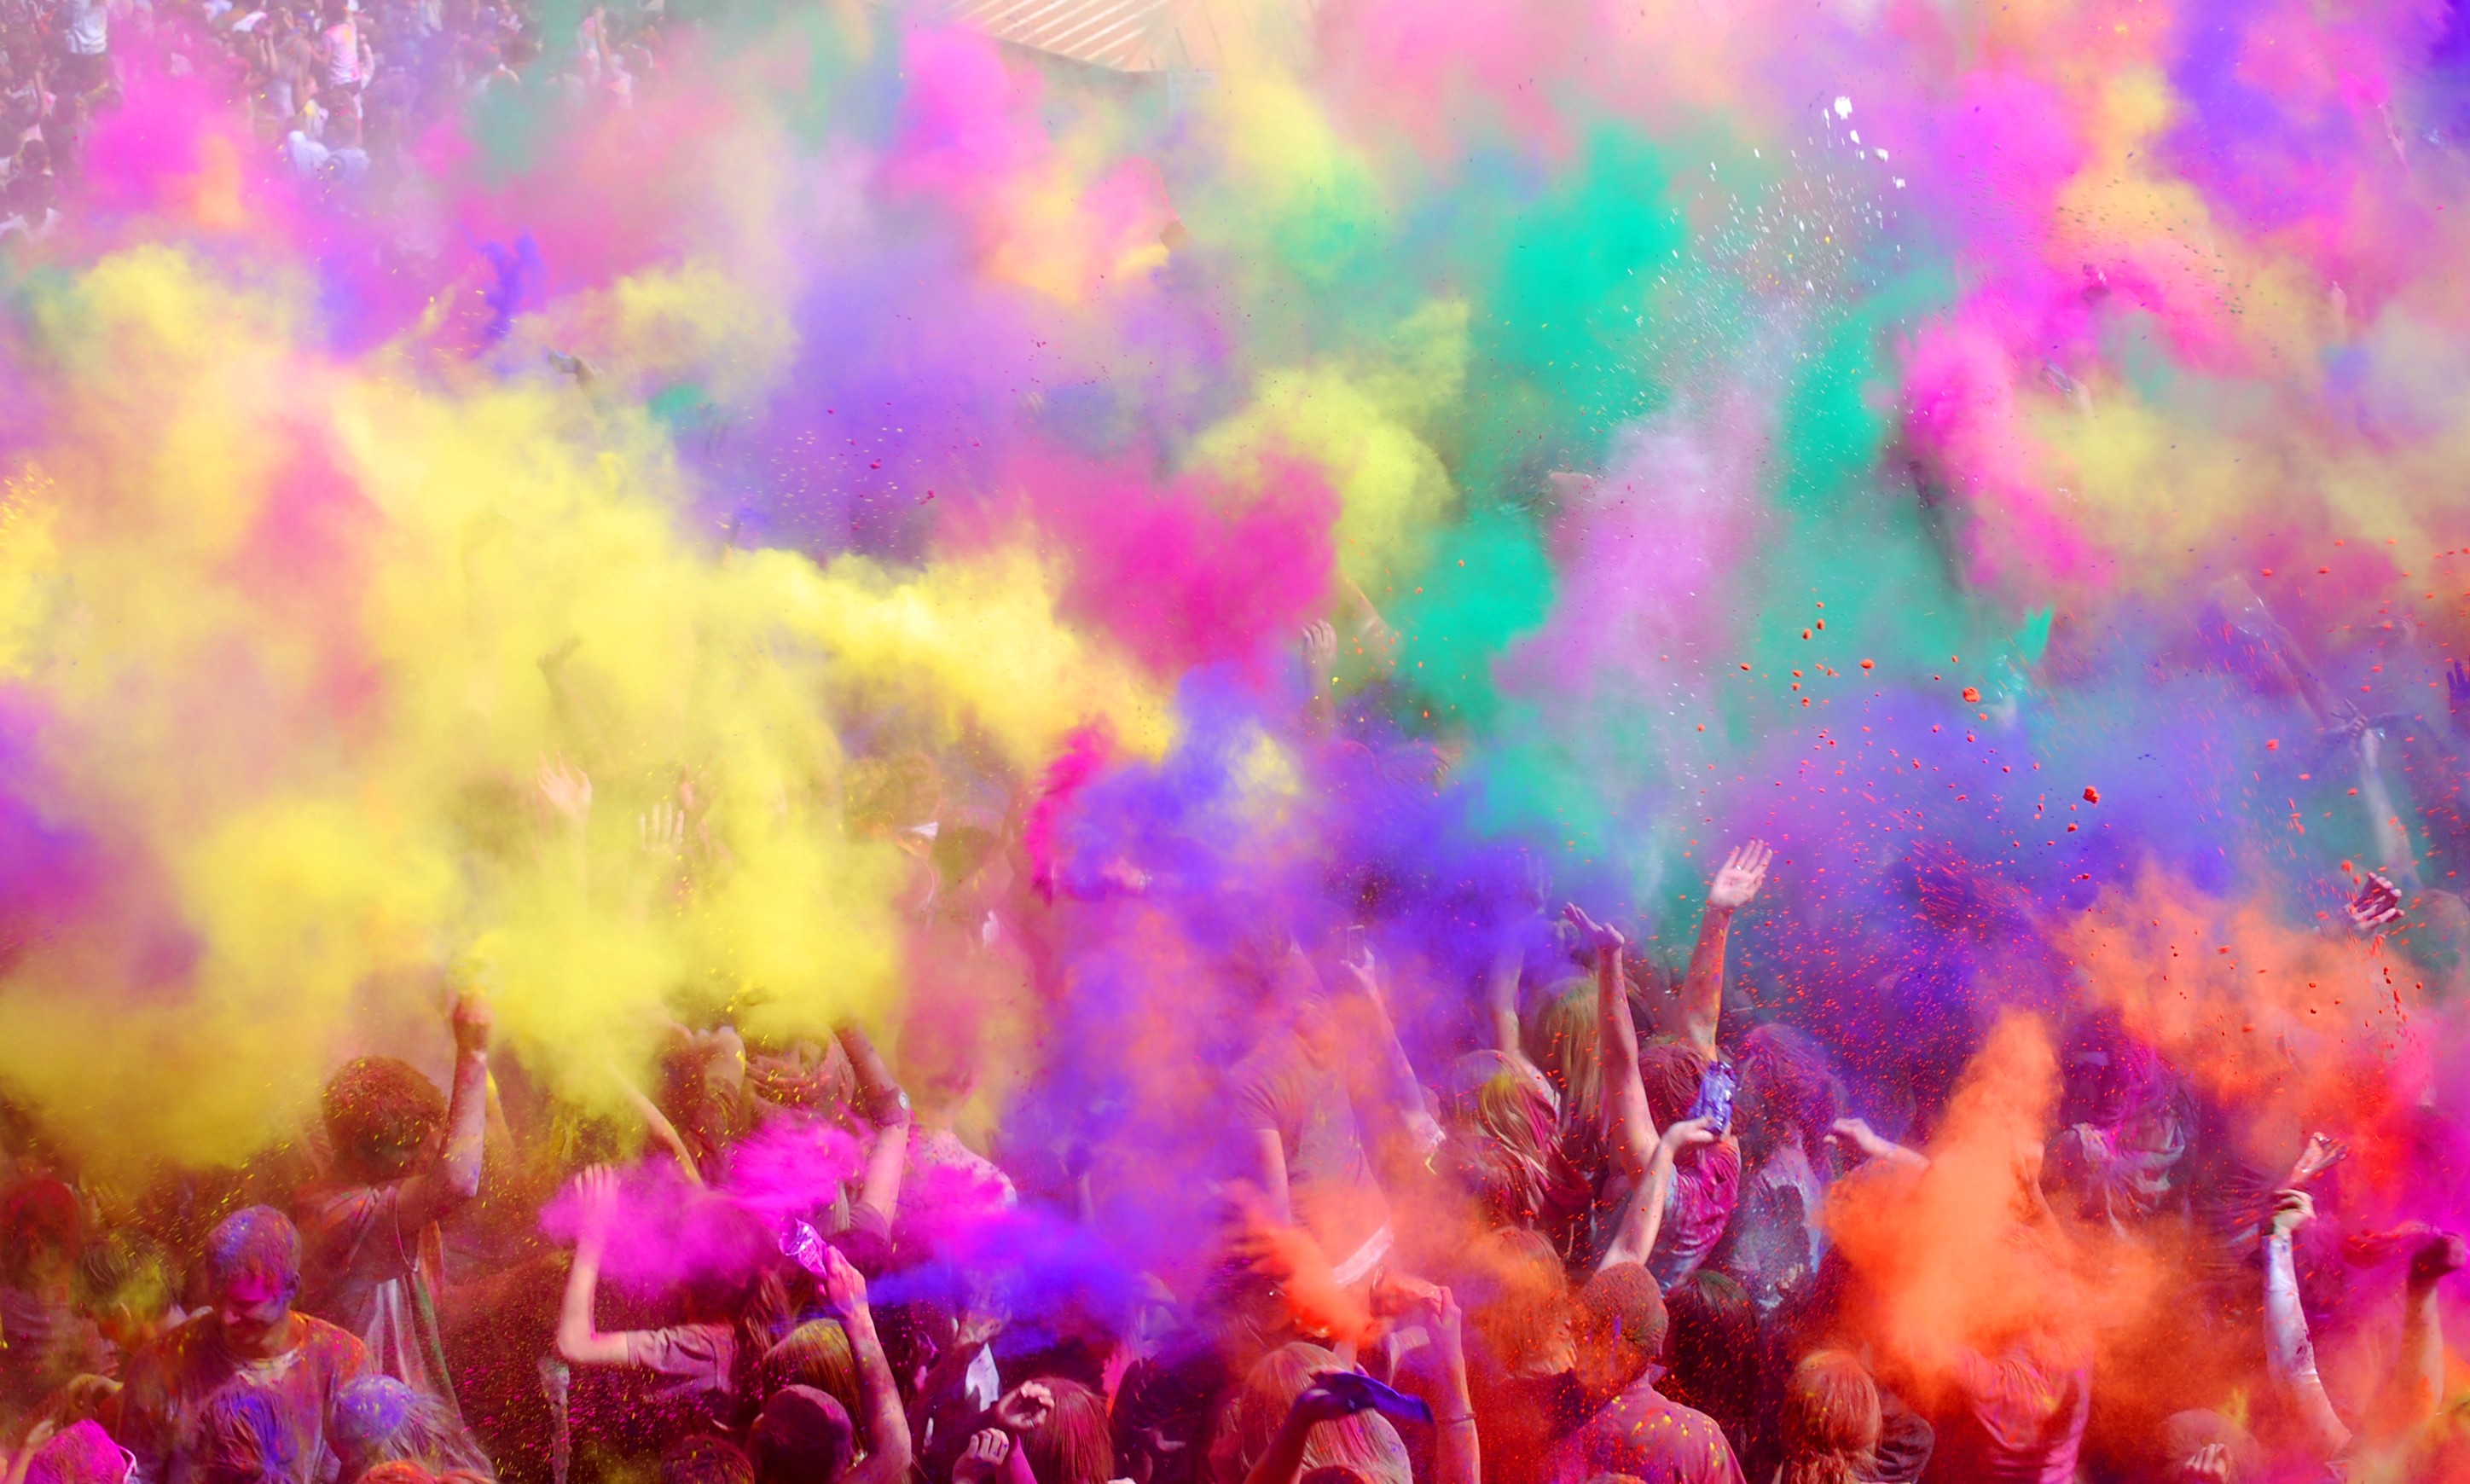 download holi festival wallpapers which is under the holi wallpapers 2896x1740